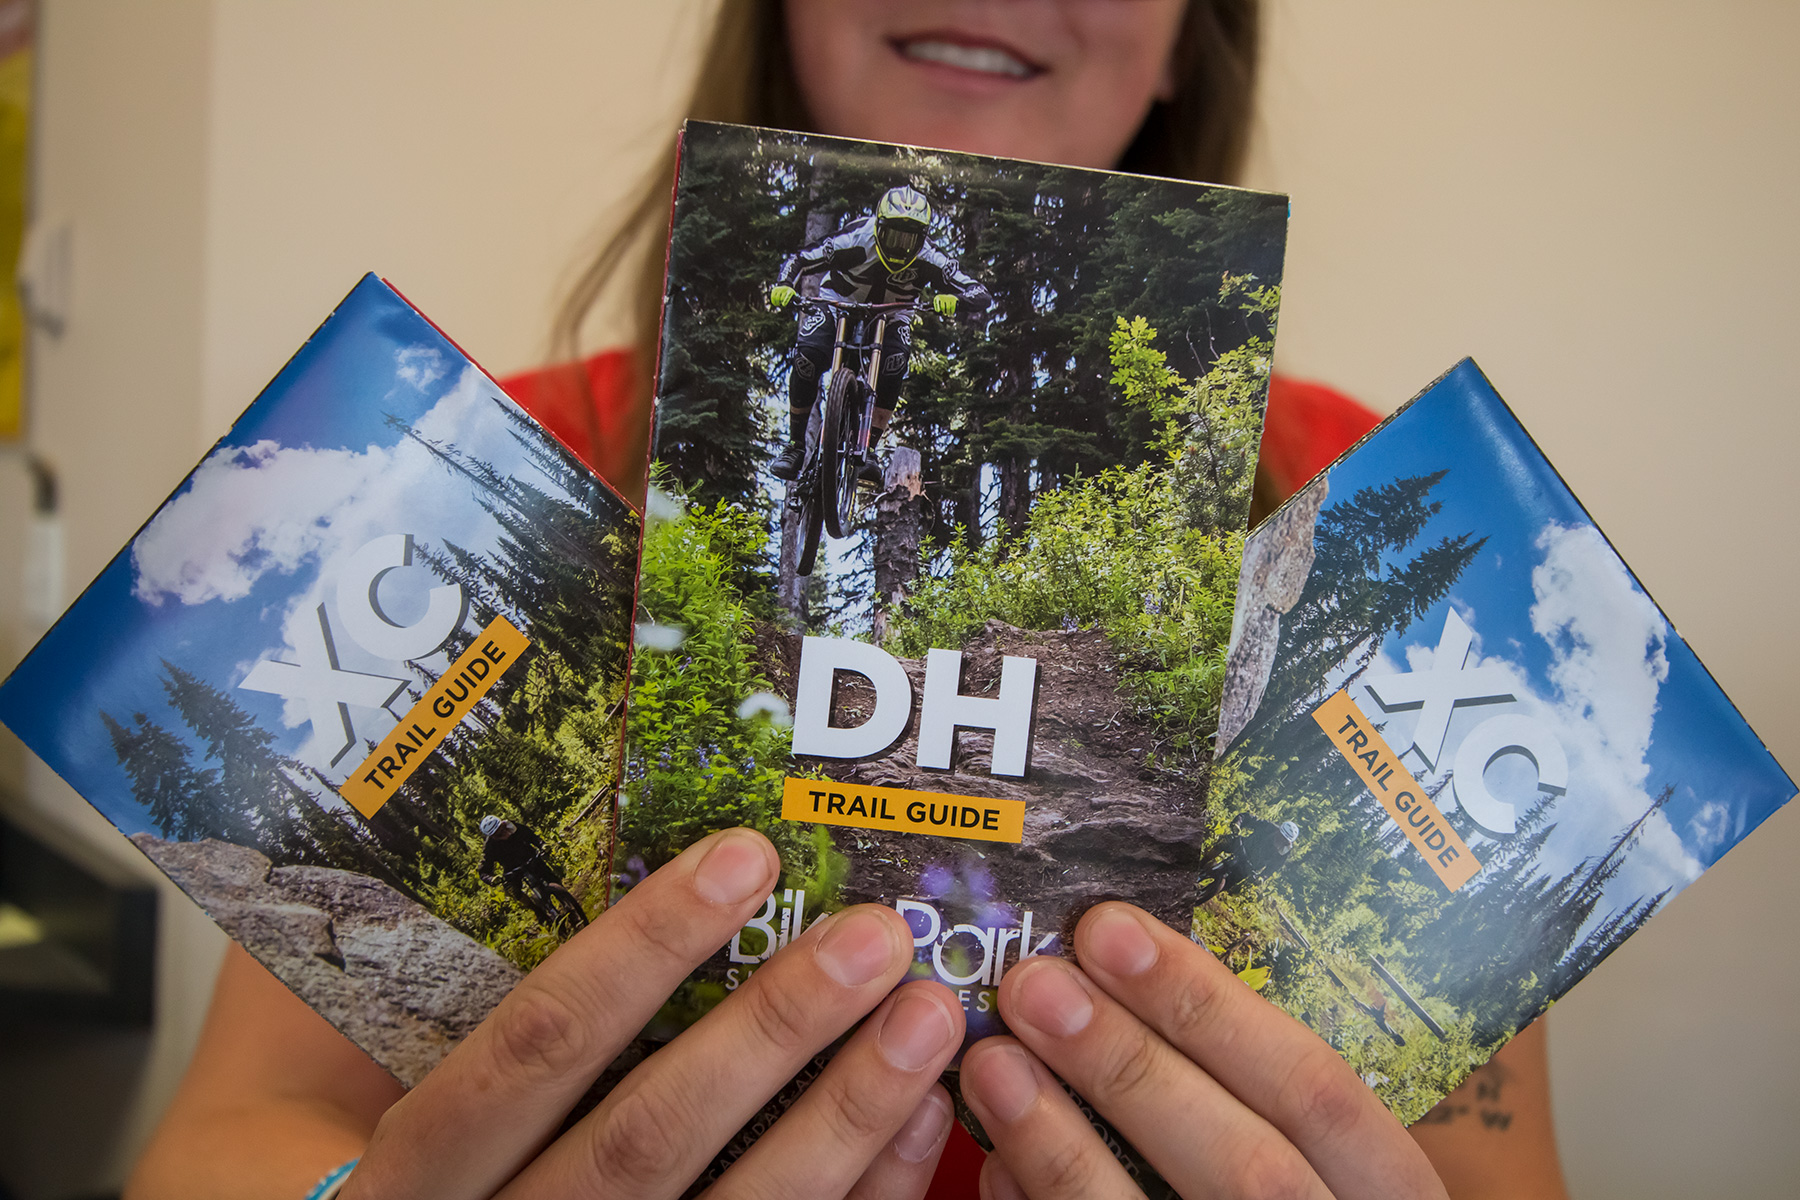 Our bike maps are double sided; XC on one side and DH on the other.